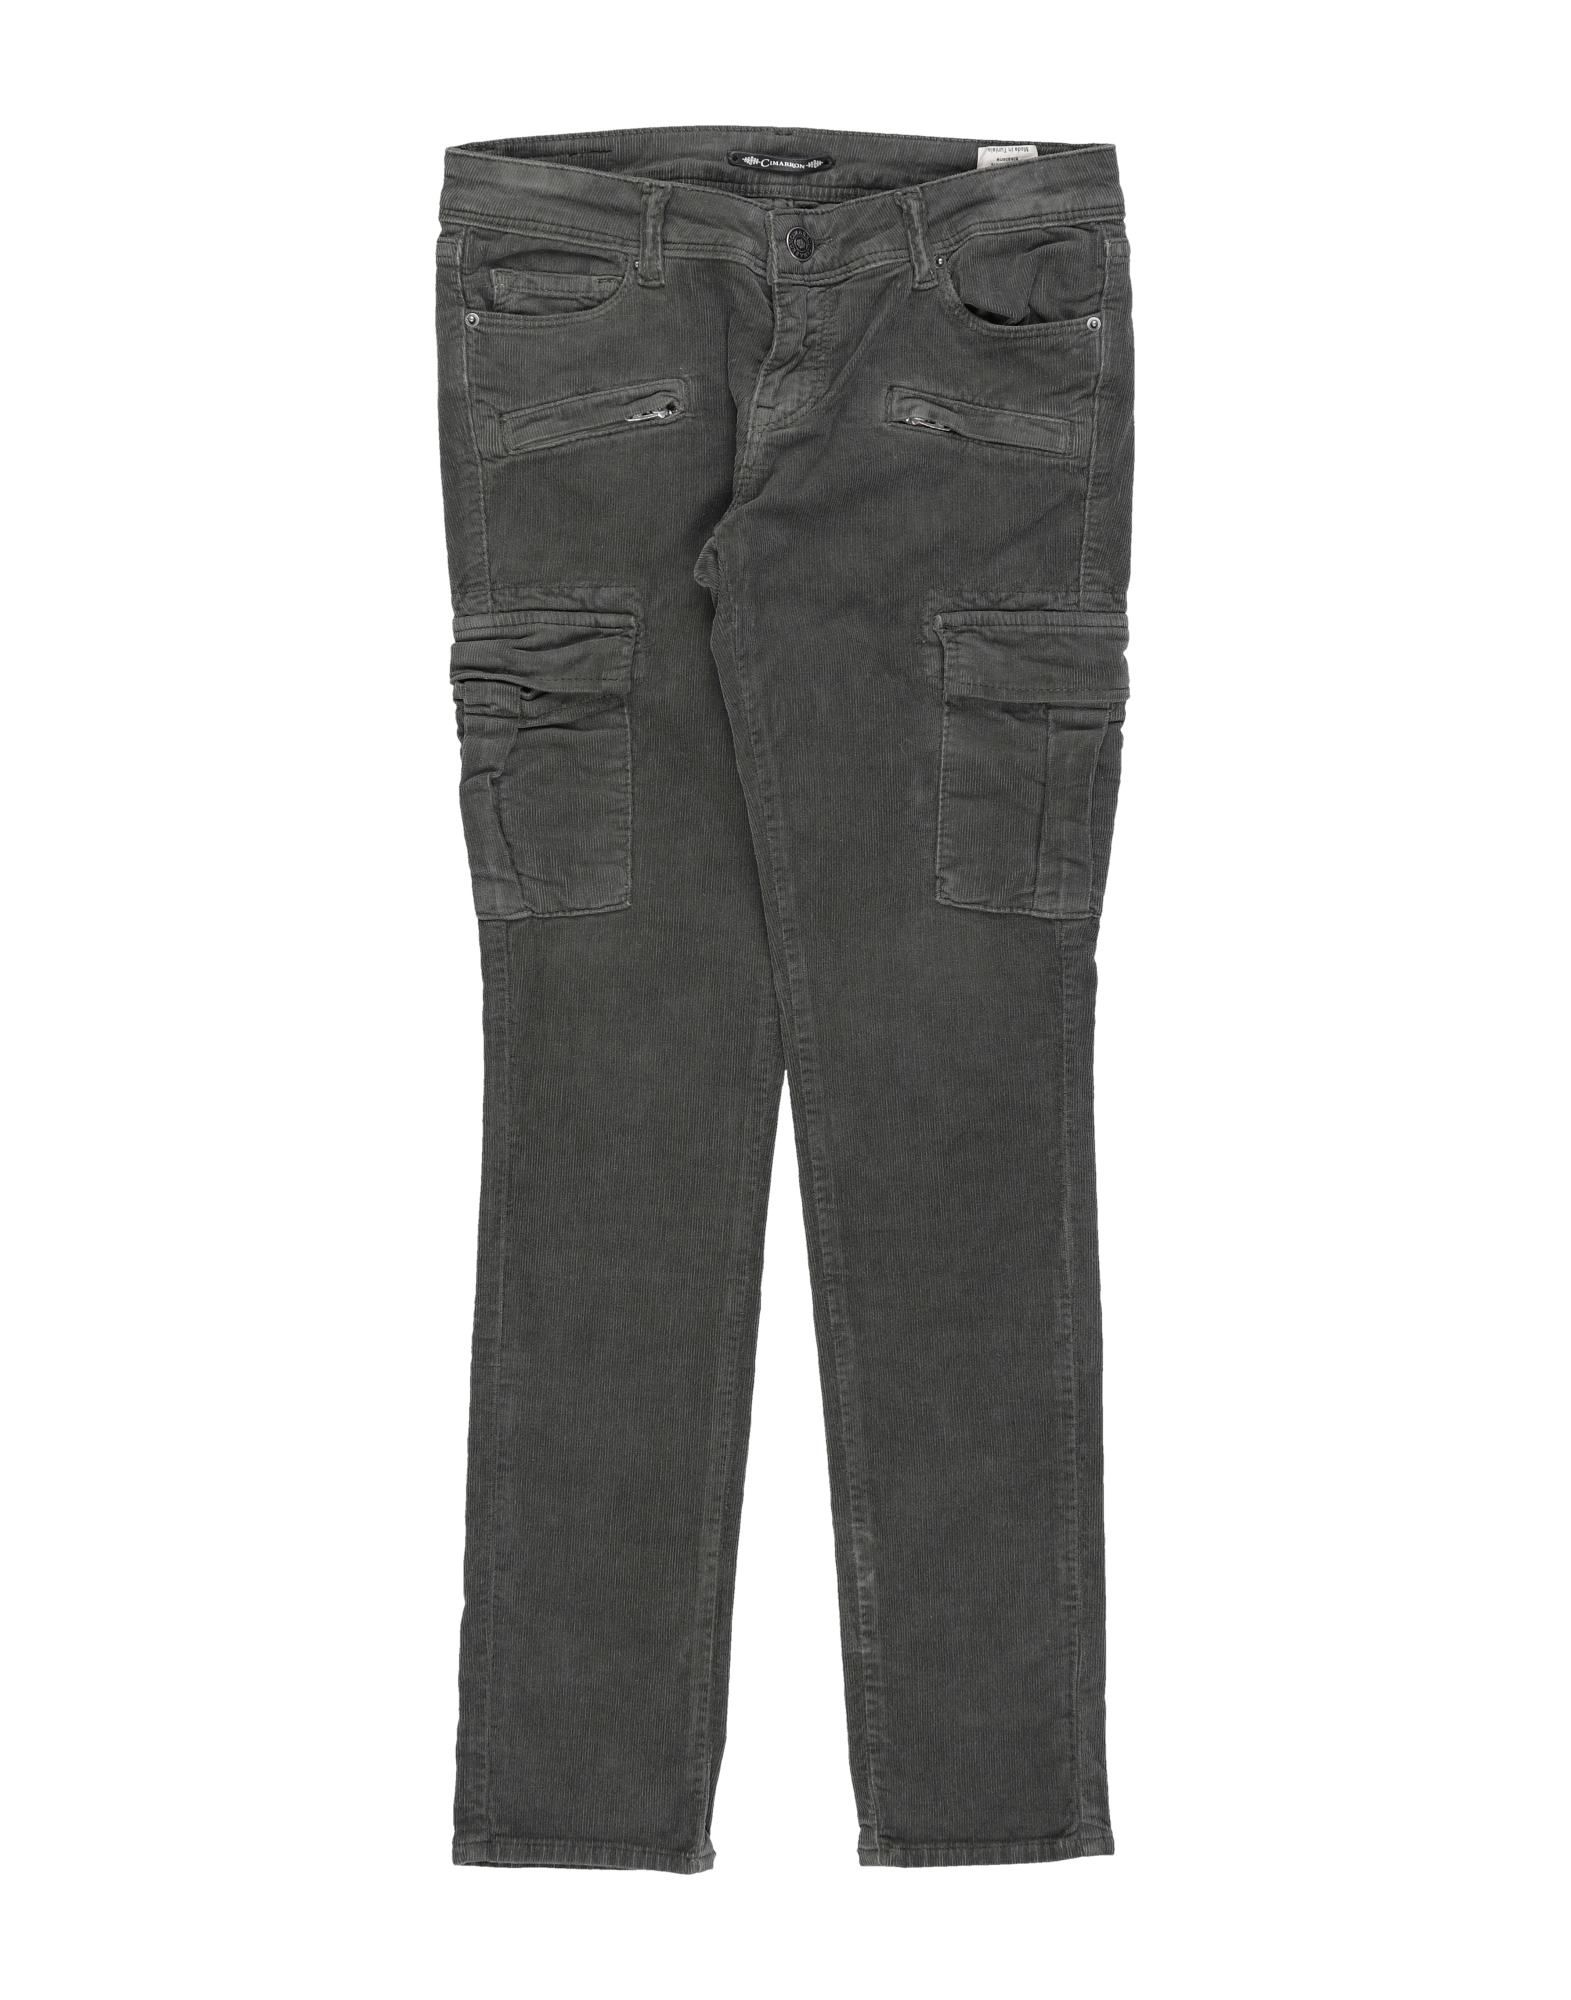 Cimarron Kids' Casual Pants In Military Green